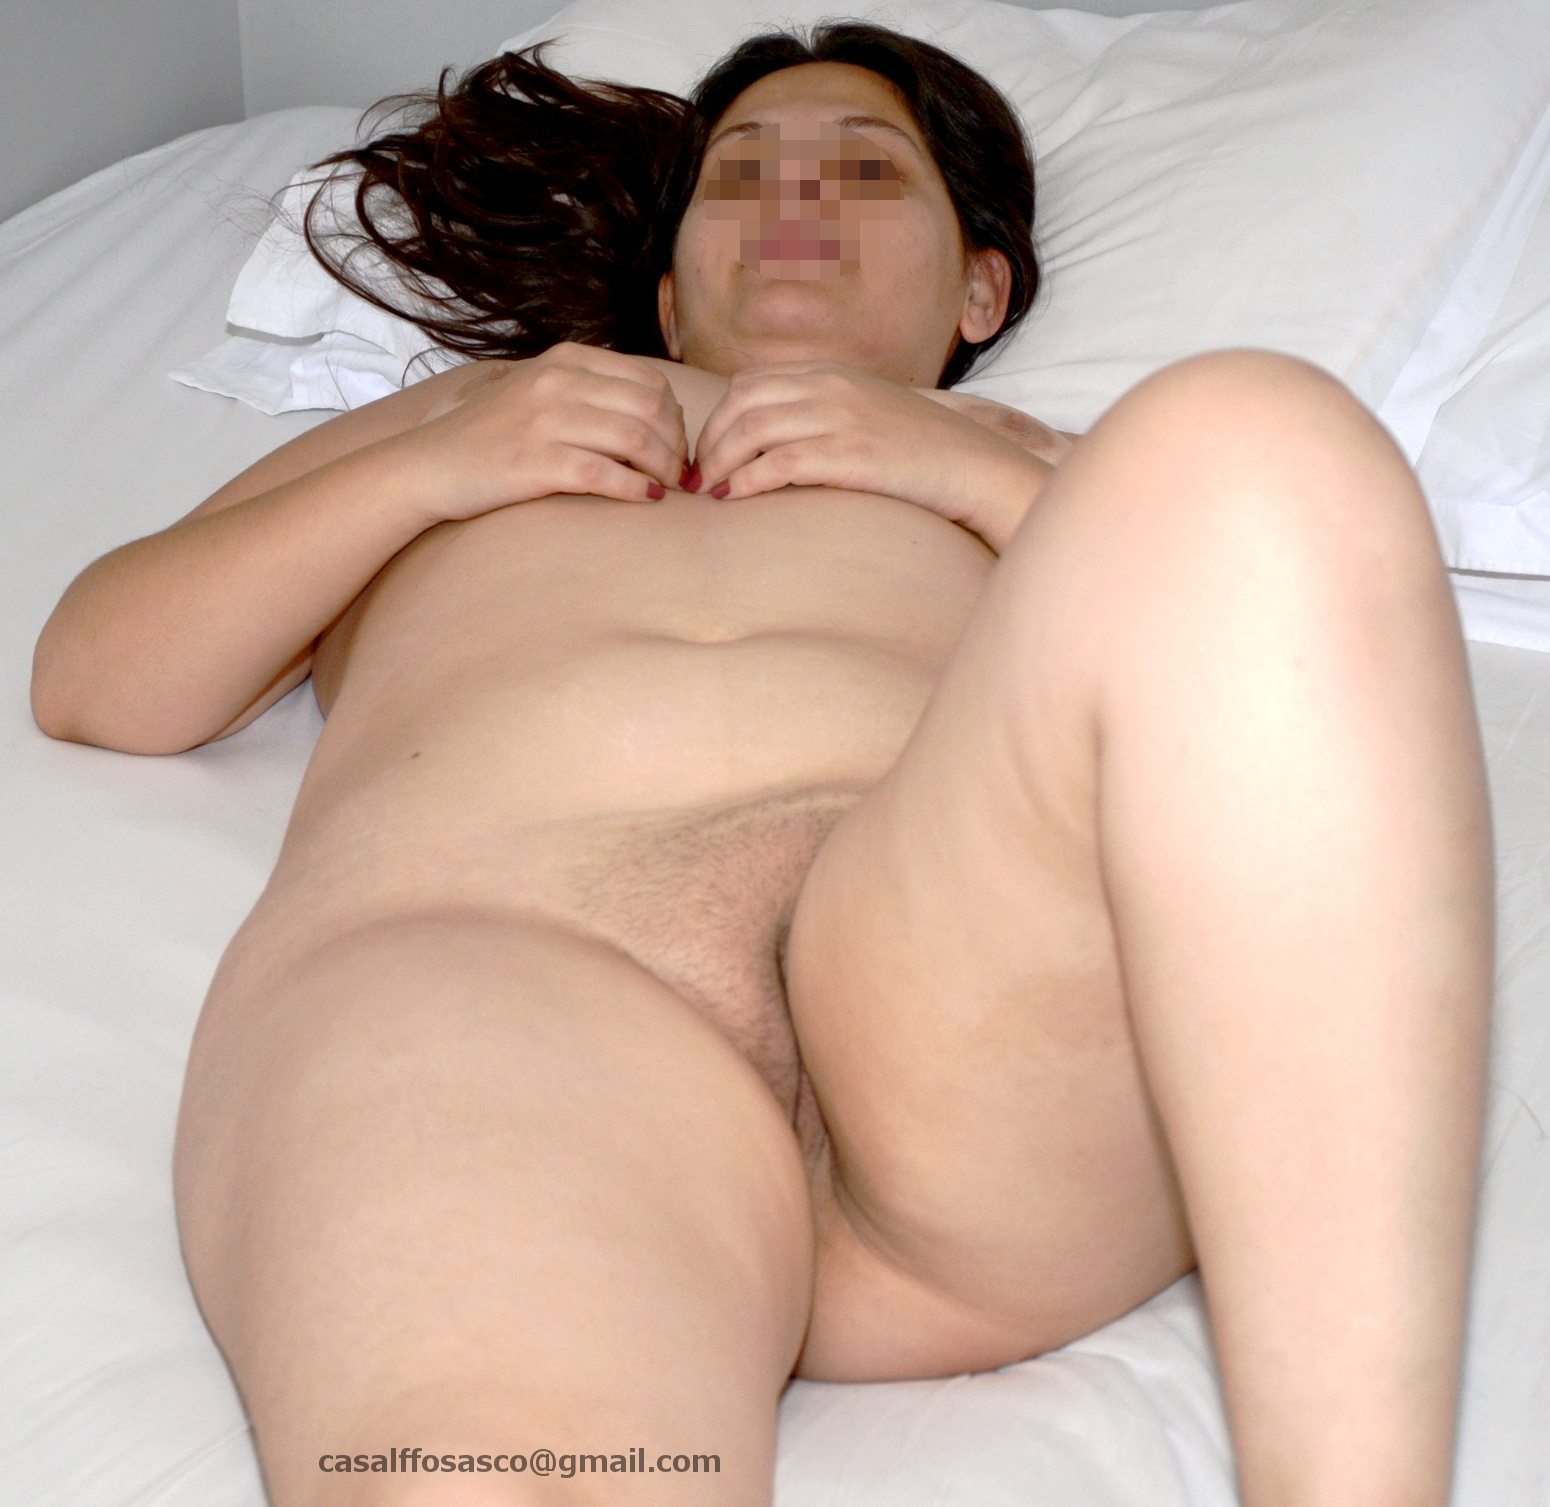 from Aydin brazil bbw nude pussy